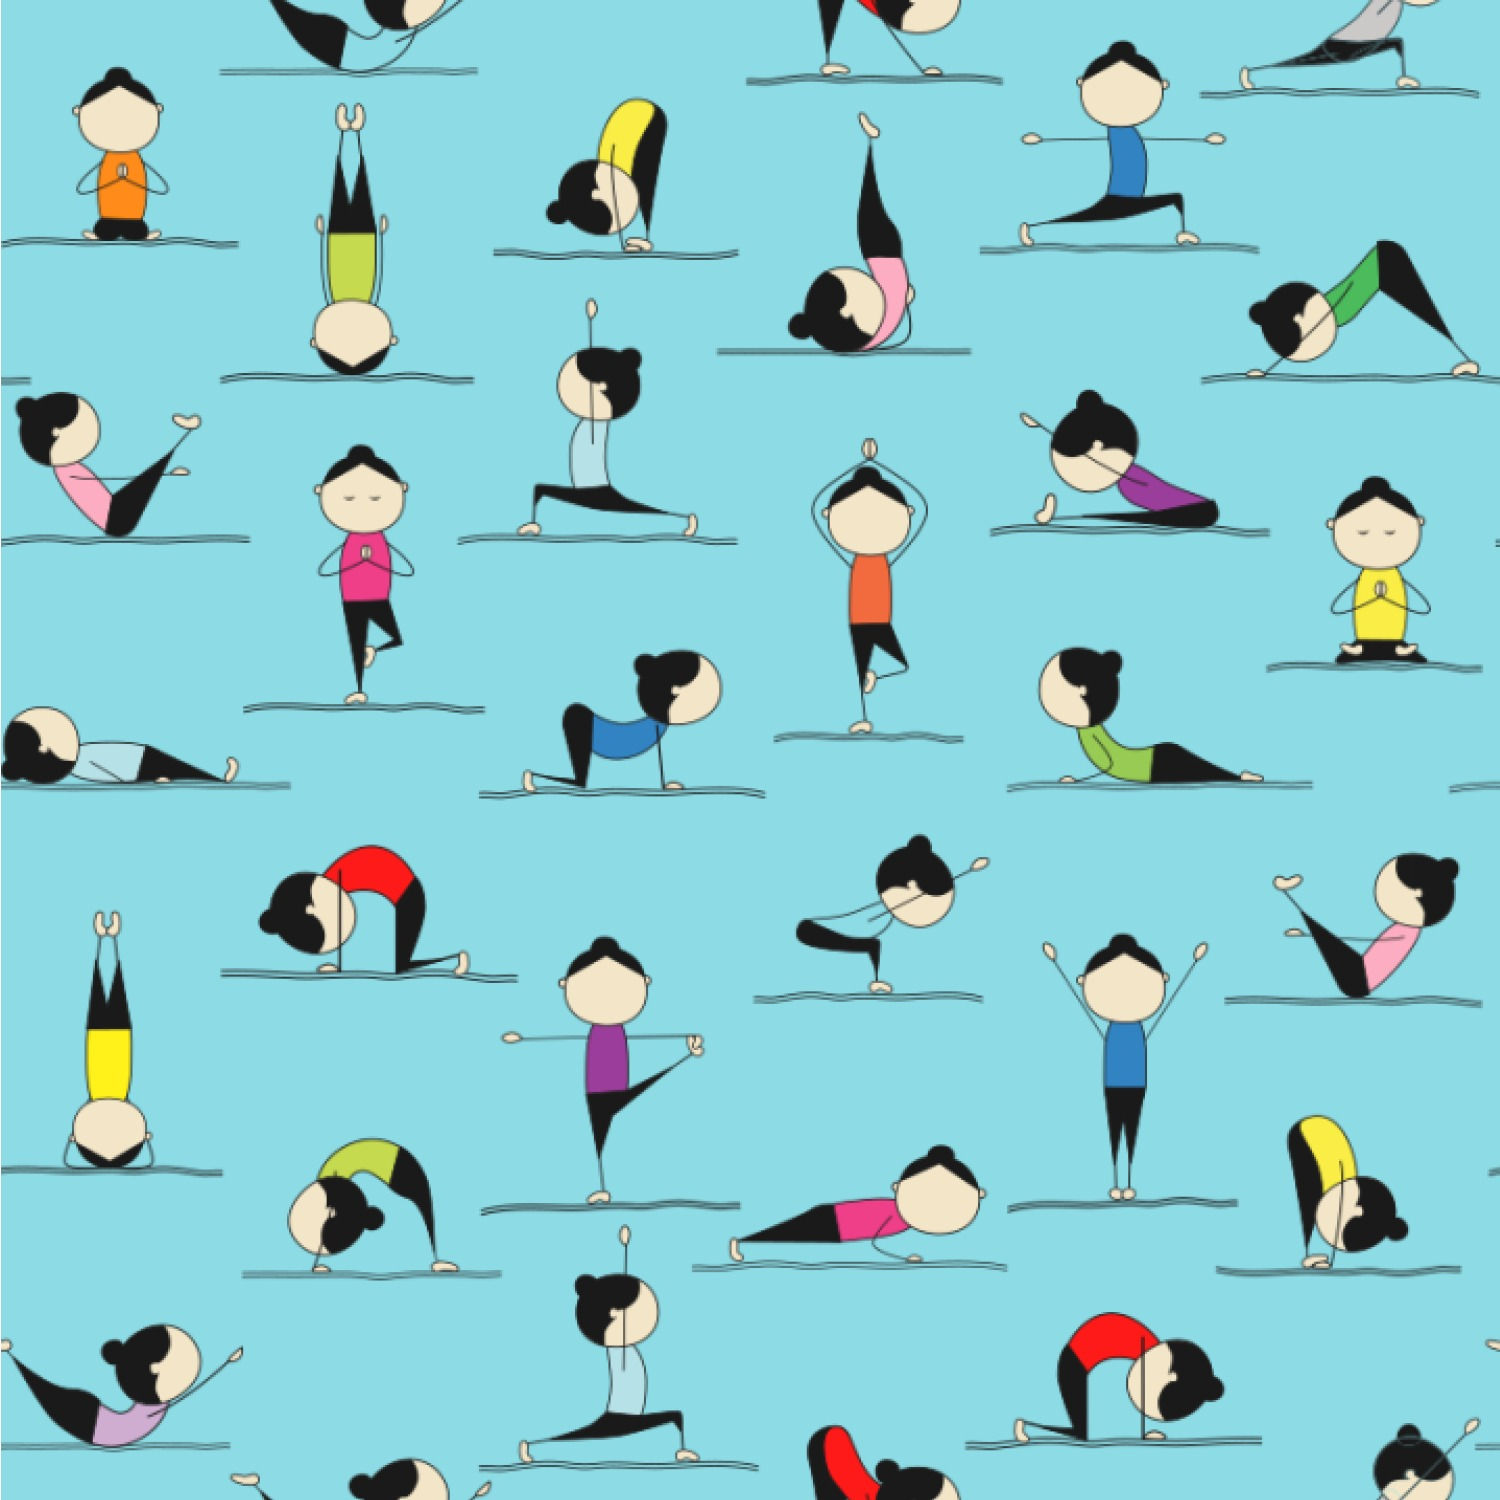 Yoga Poses Wallpaper & Surface Covering - YouCustomizeIt